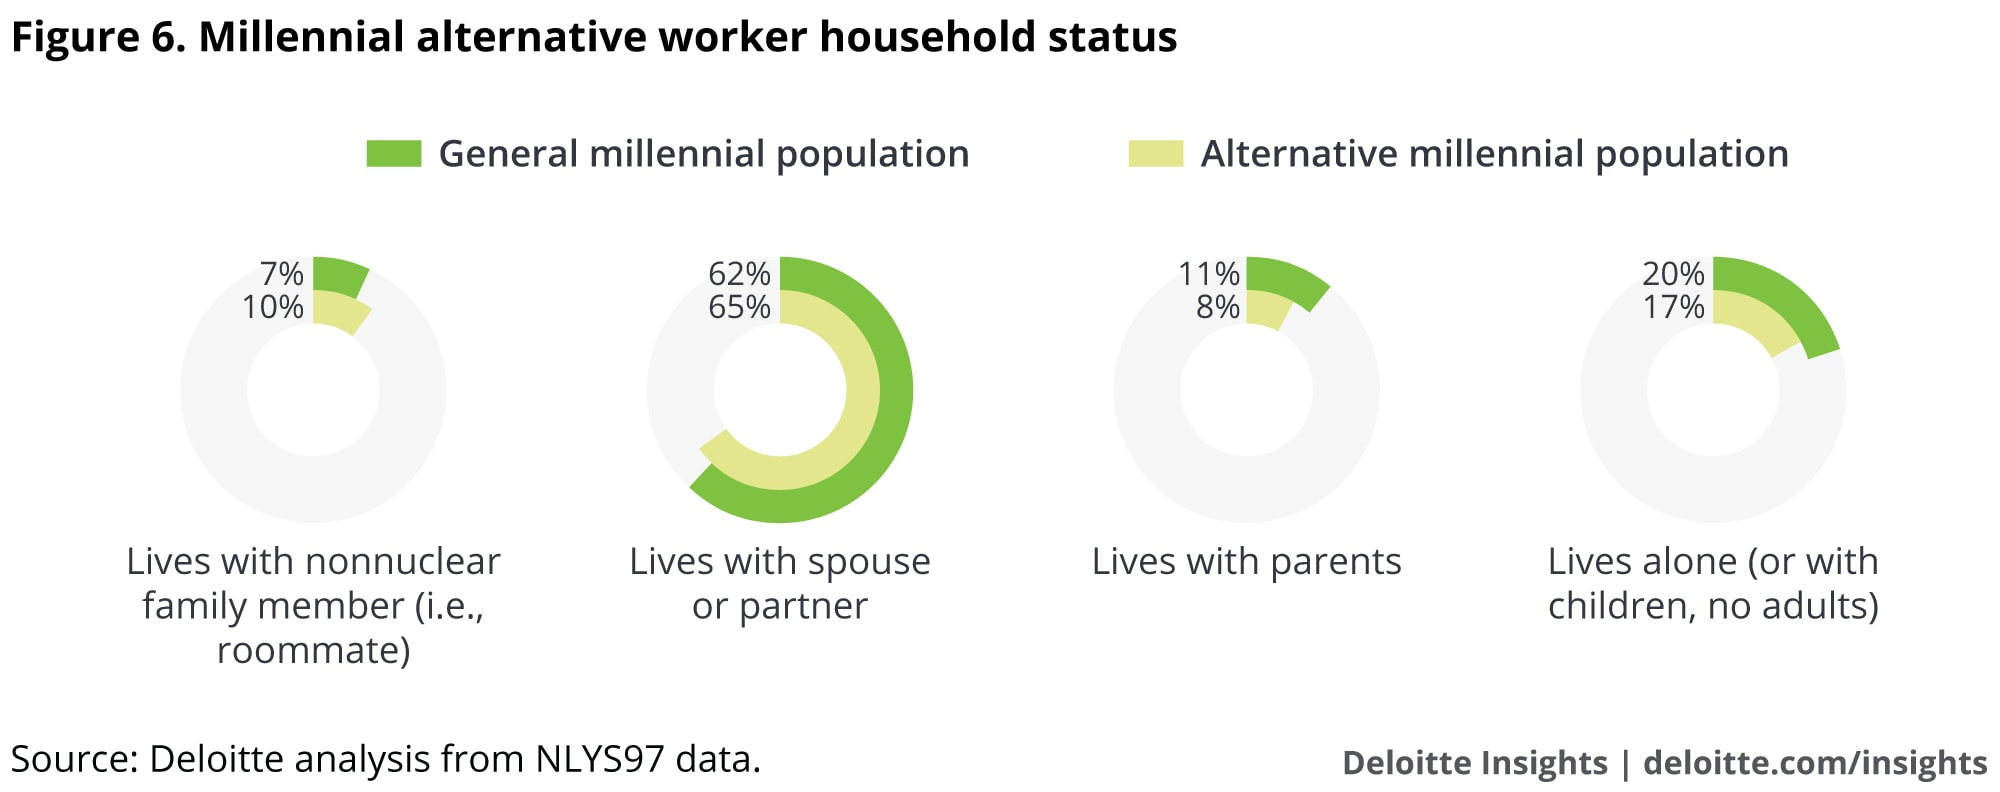 Millennial alternative worker household status